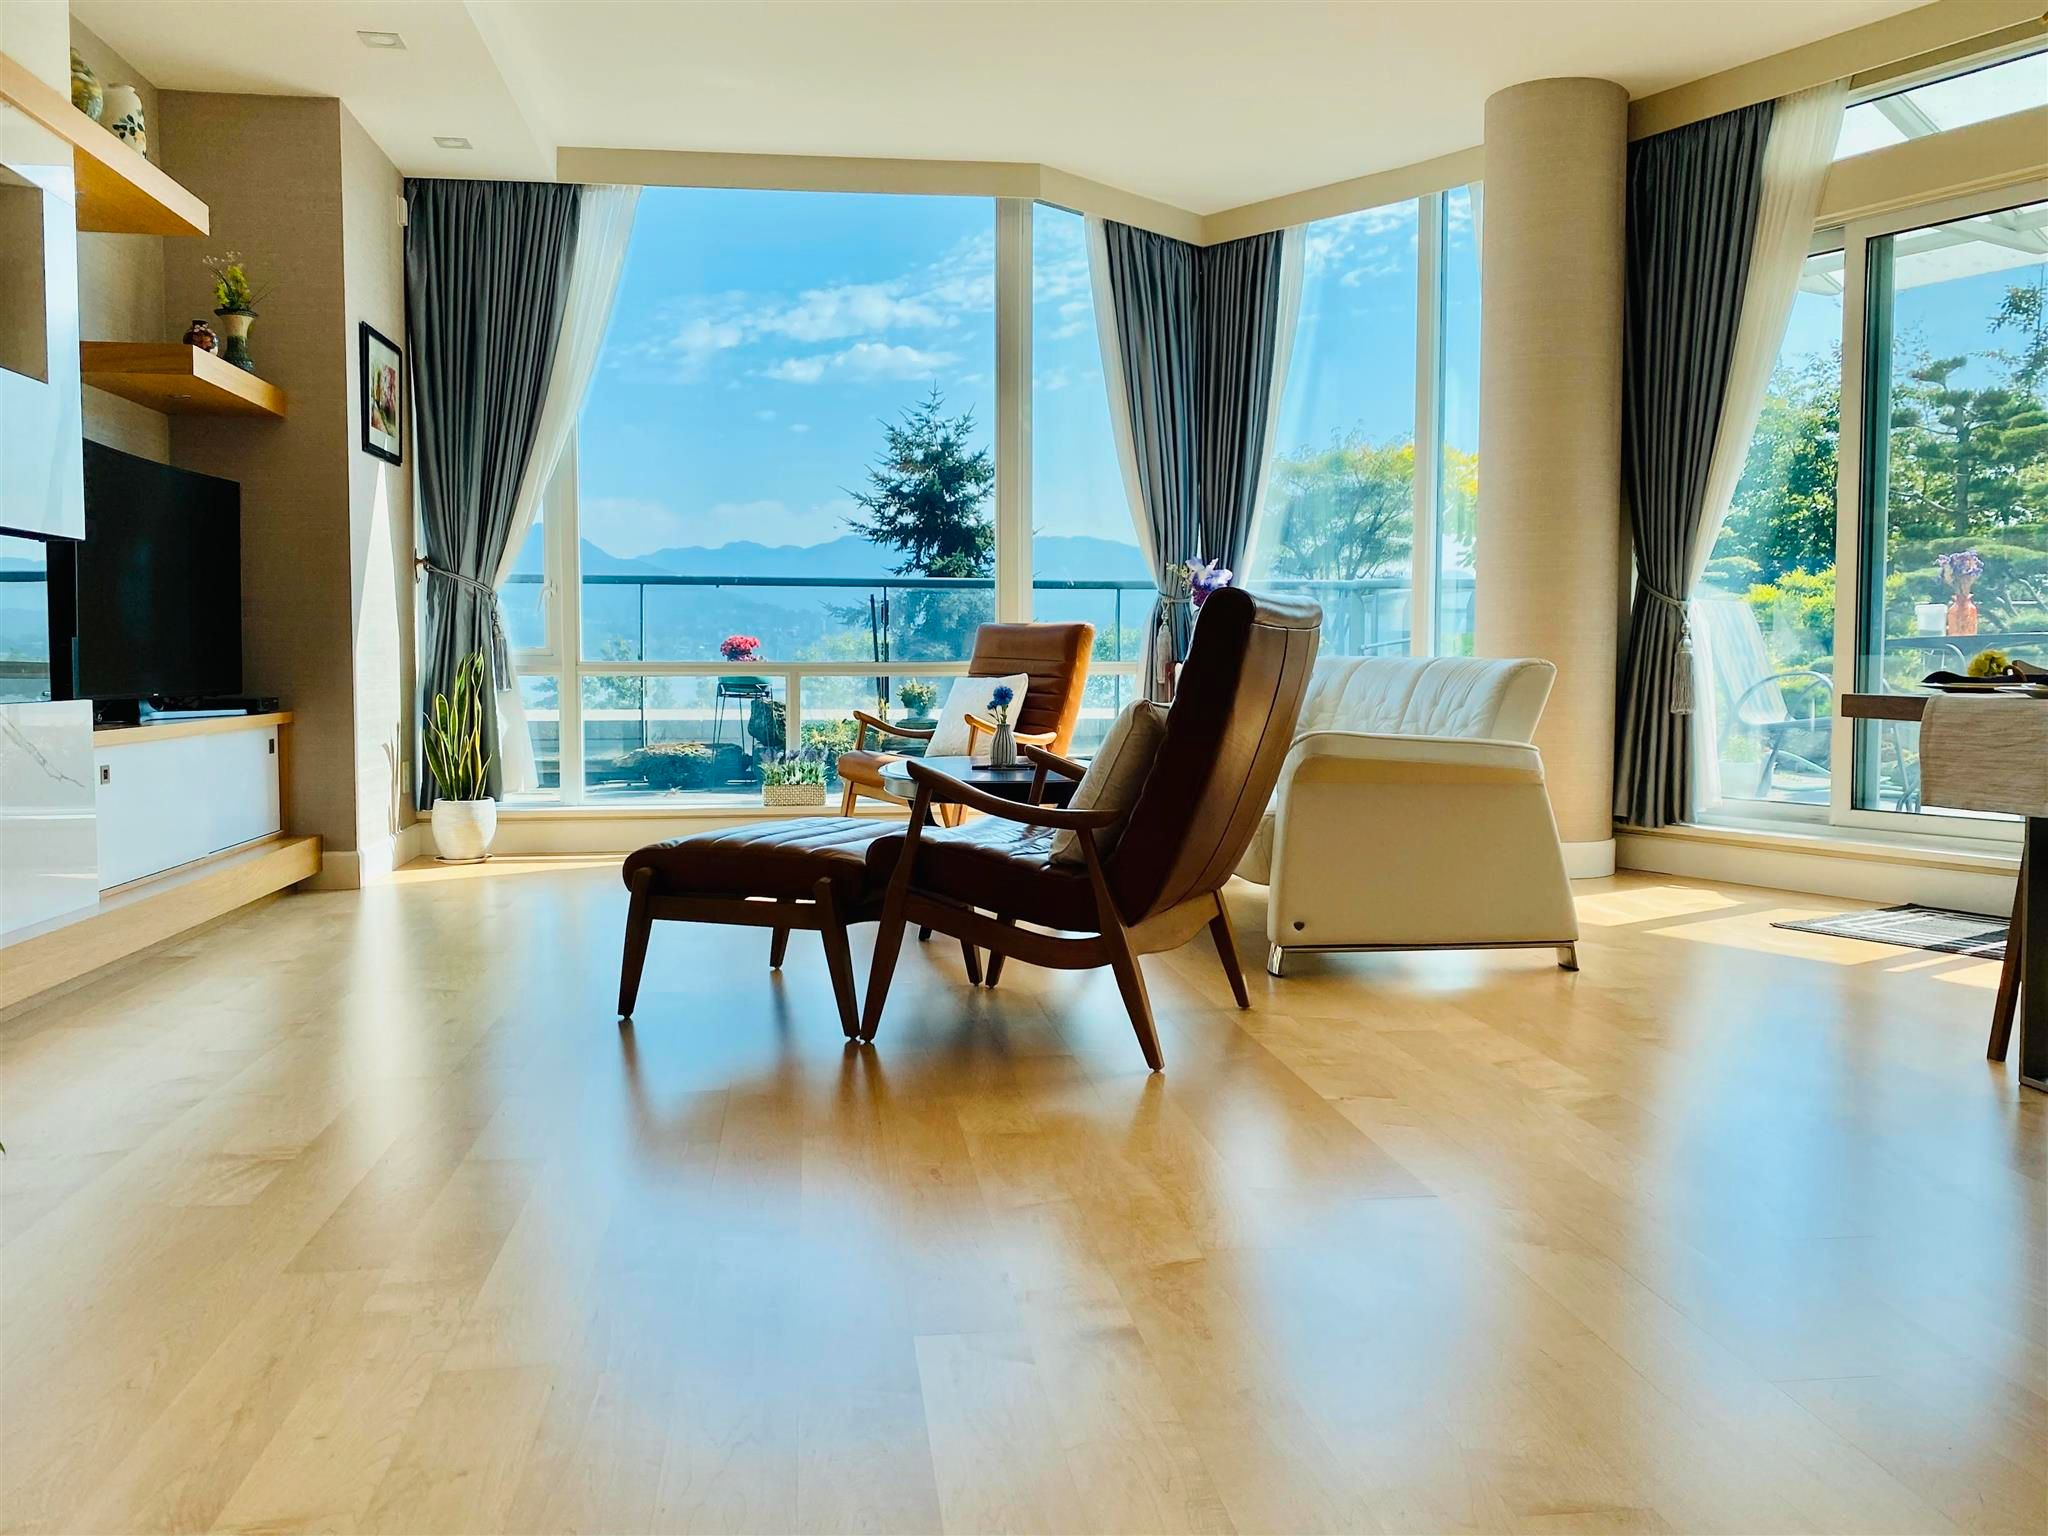 """Main Photo: 302 323 JERVIS Street in Vancouver: Coal Harbour Condo for sale in """"ESCALA"""" (Vancouver West)  : MLS®# R2602170"""